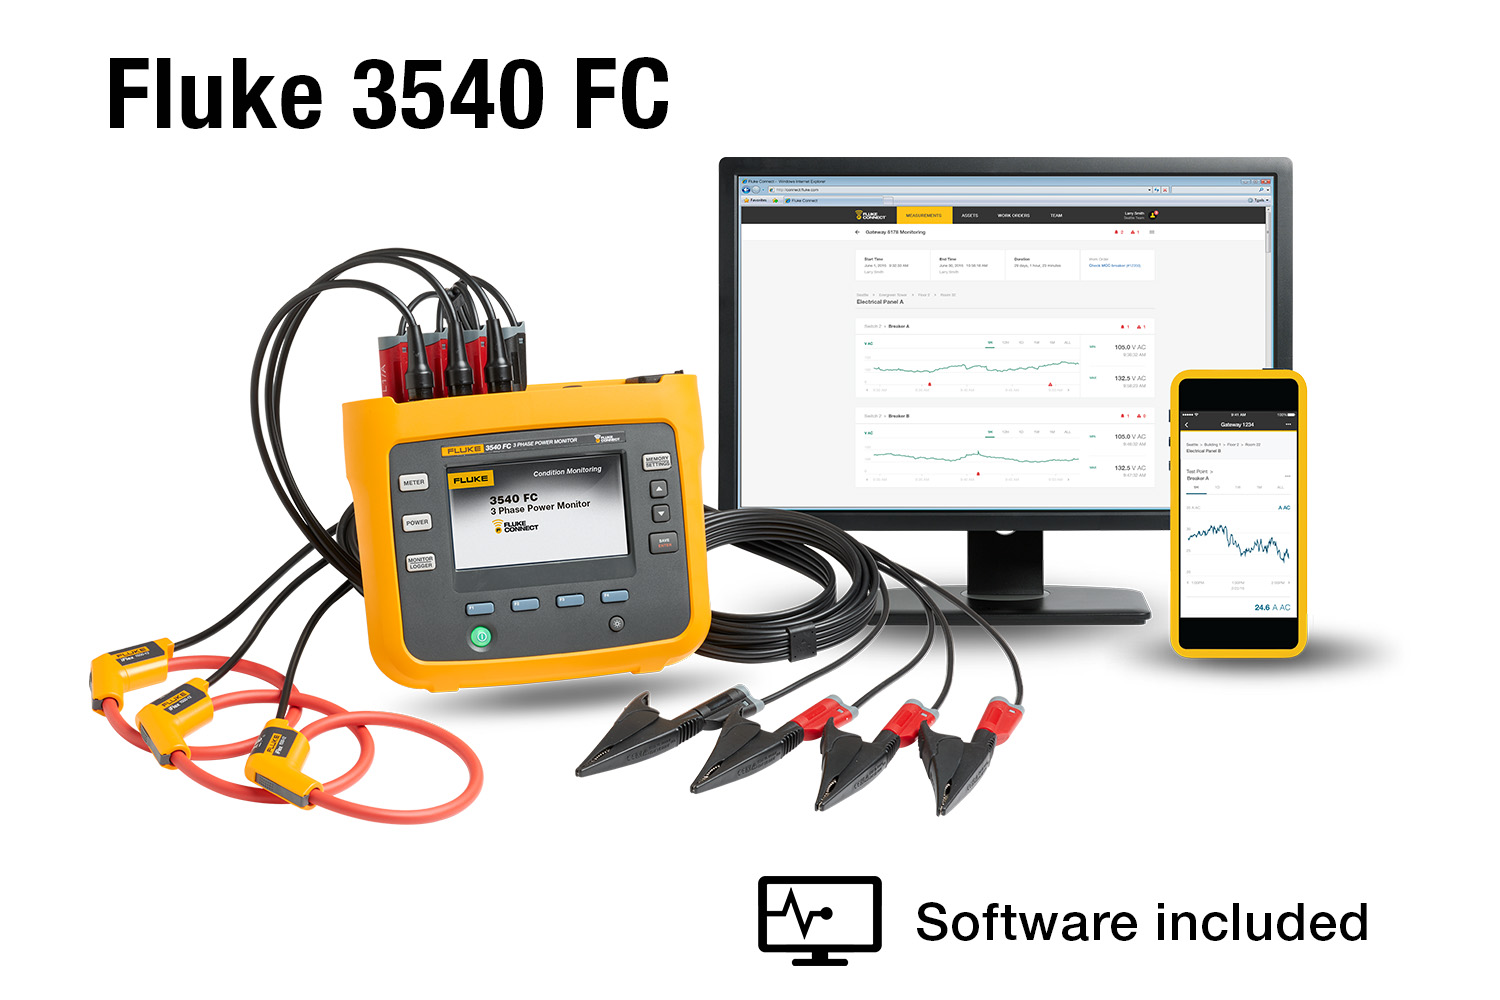 hight resolution of fluke 3540 fc three phase power monitor and condition monitoring kit fluke